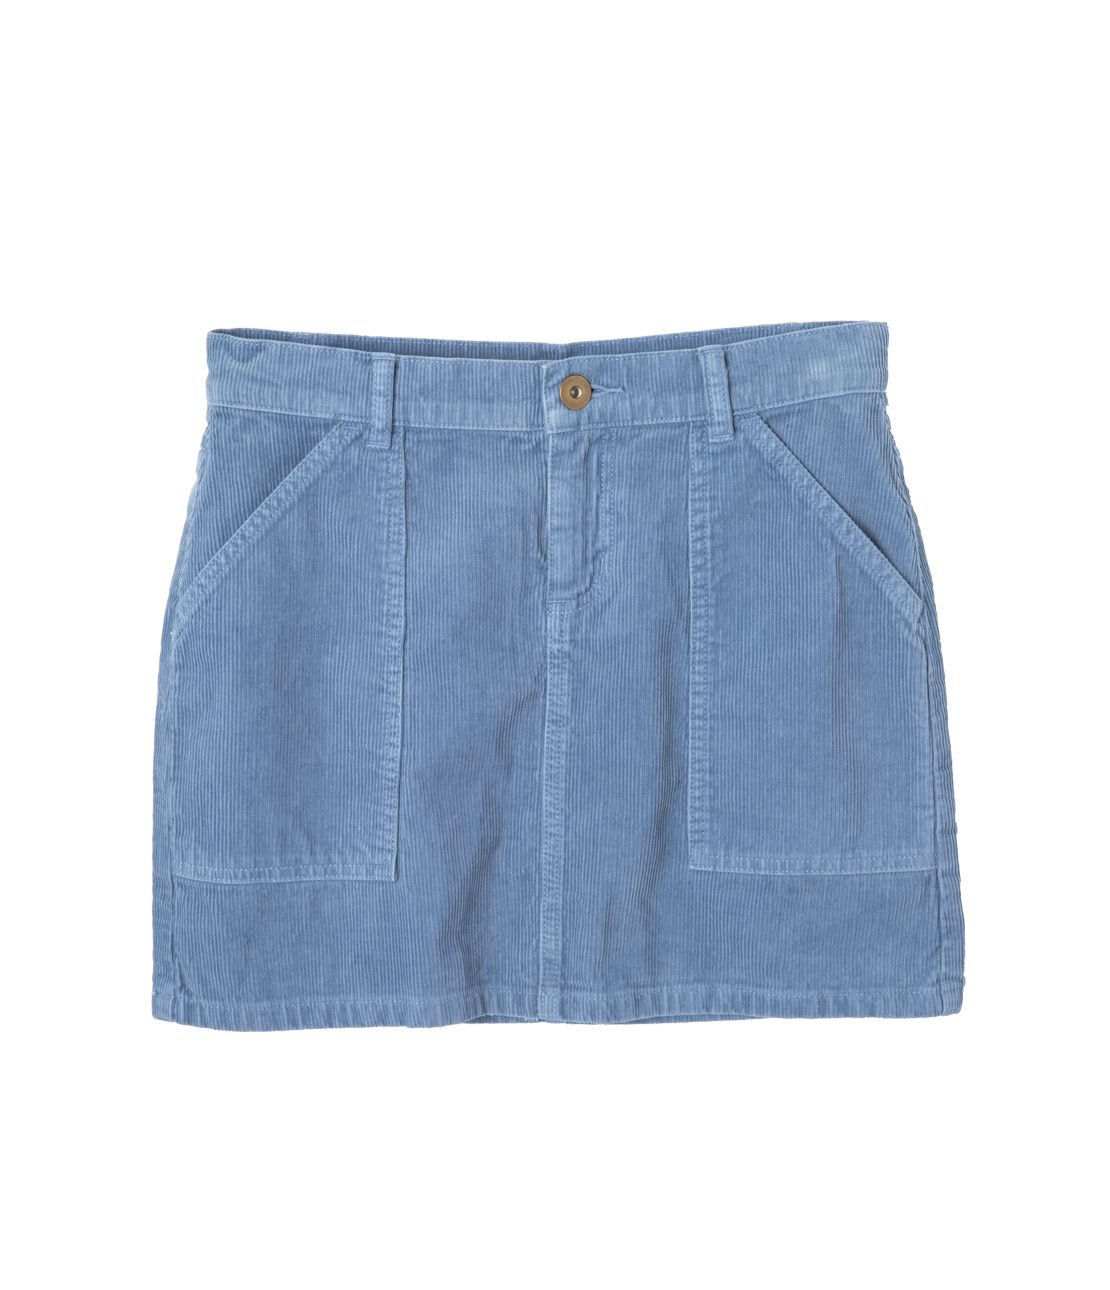 MHB corduroy mini skirt